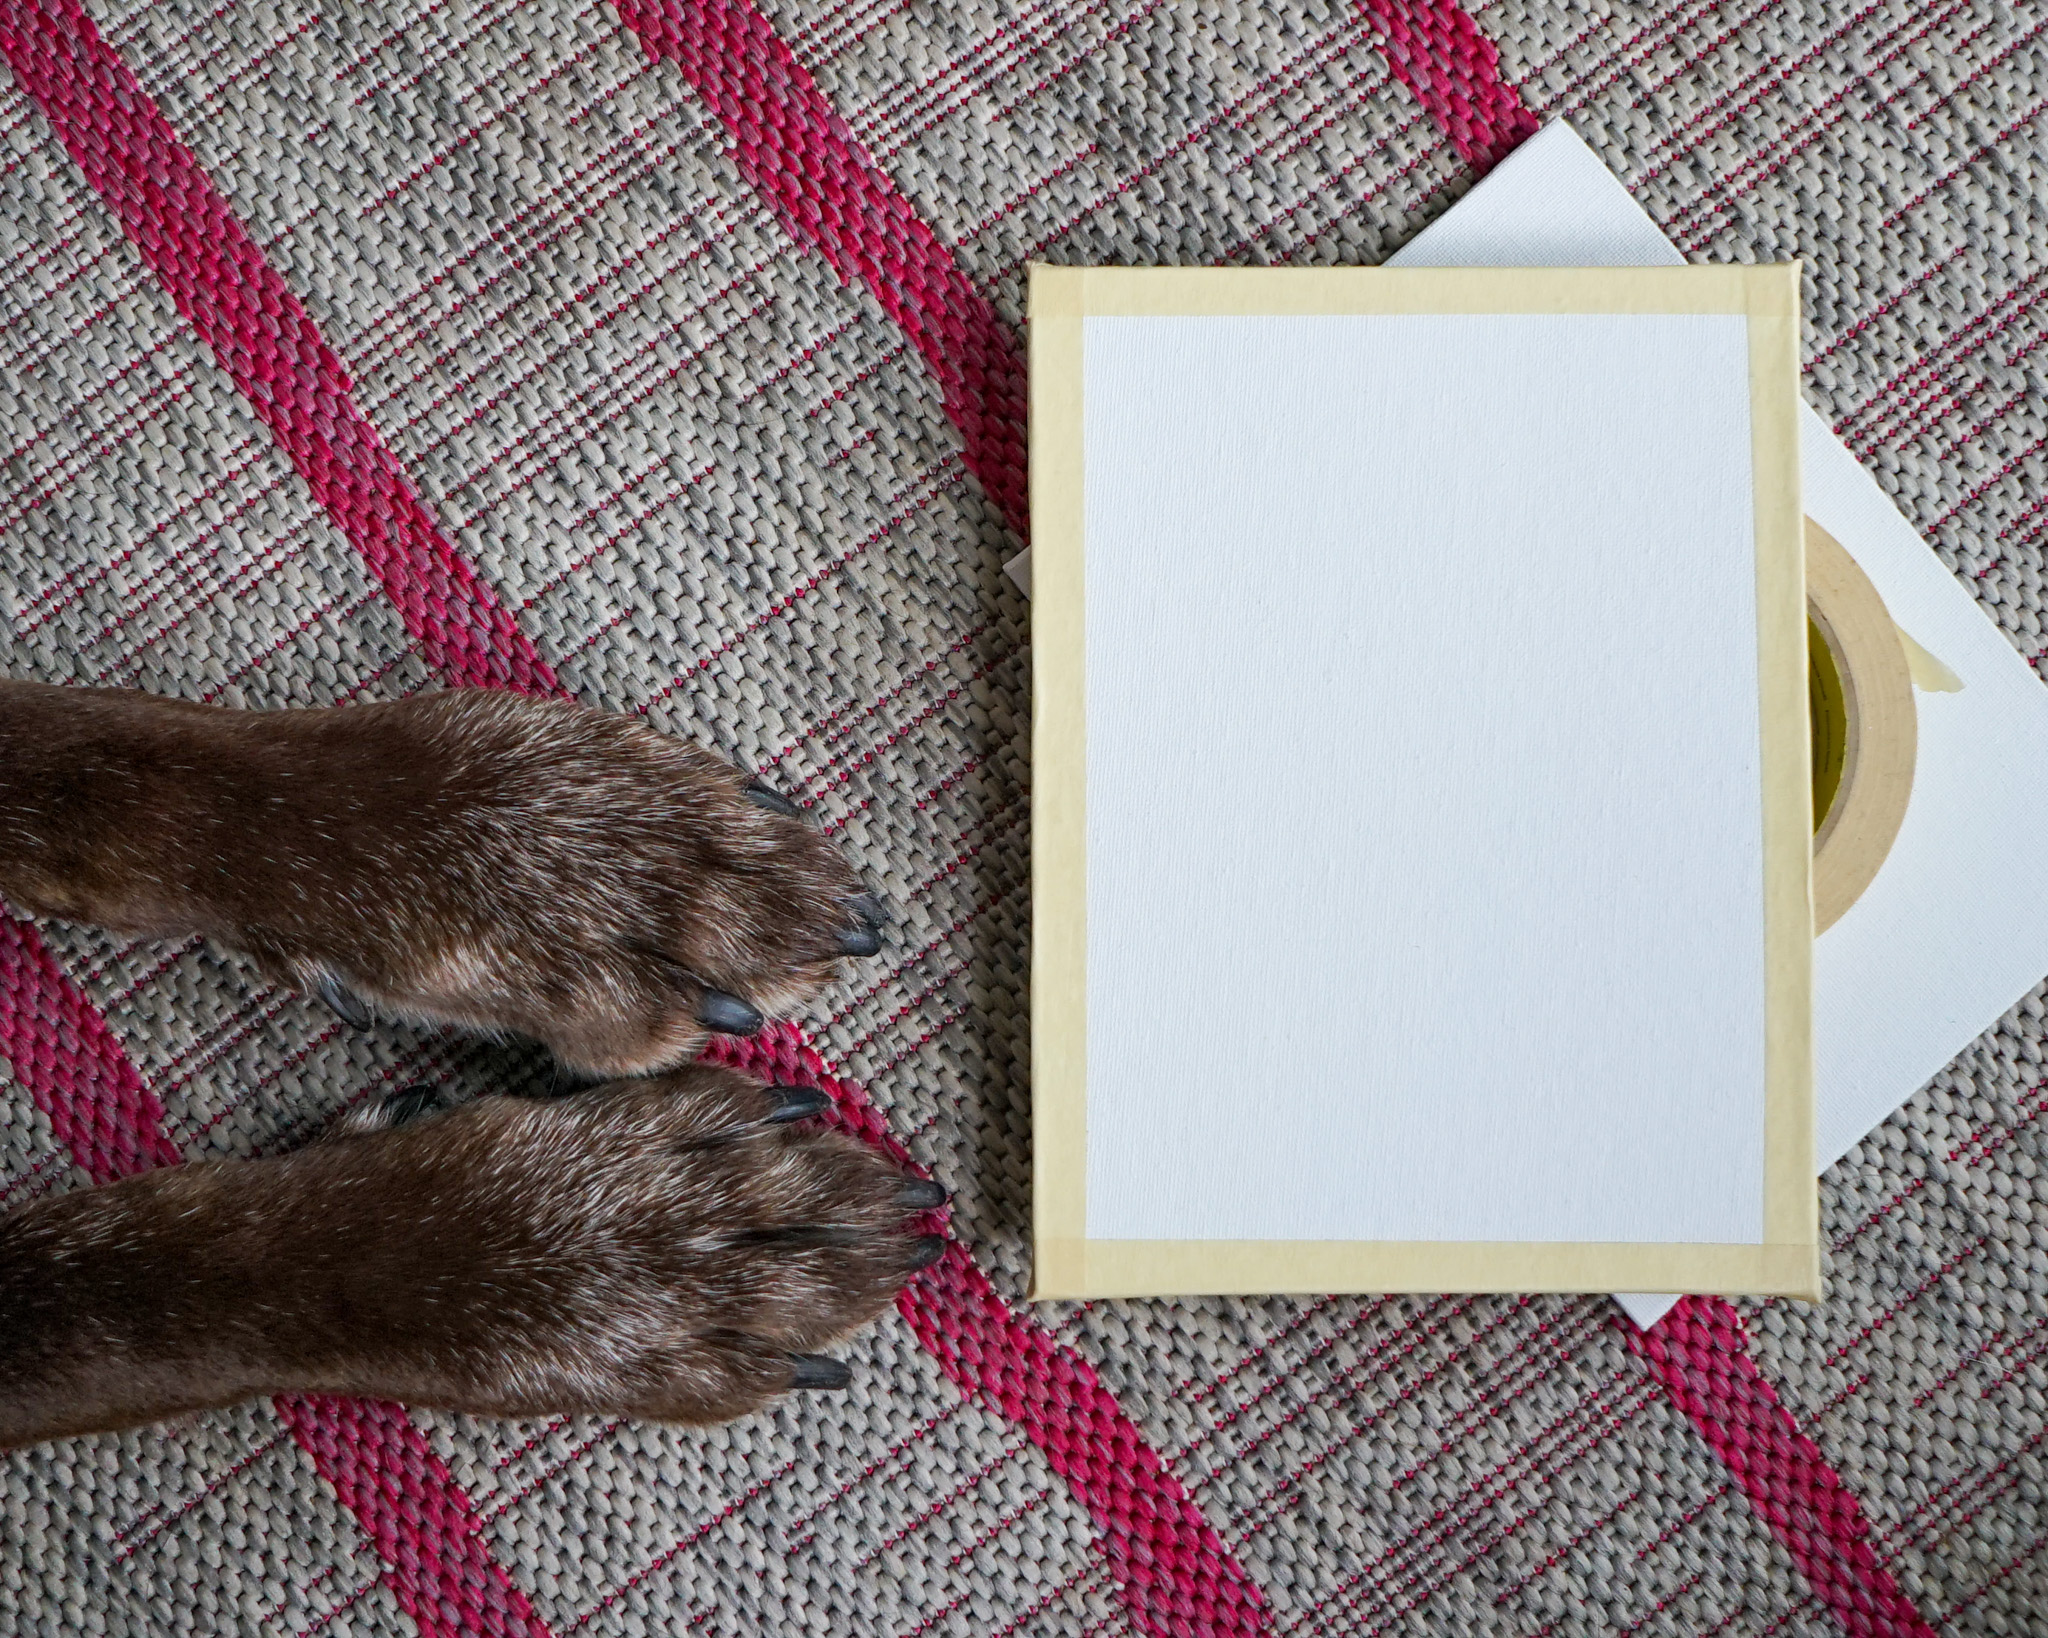 Instructions to paint with your dog